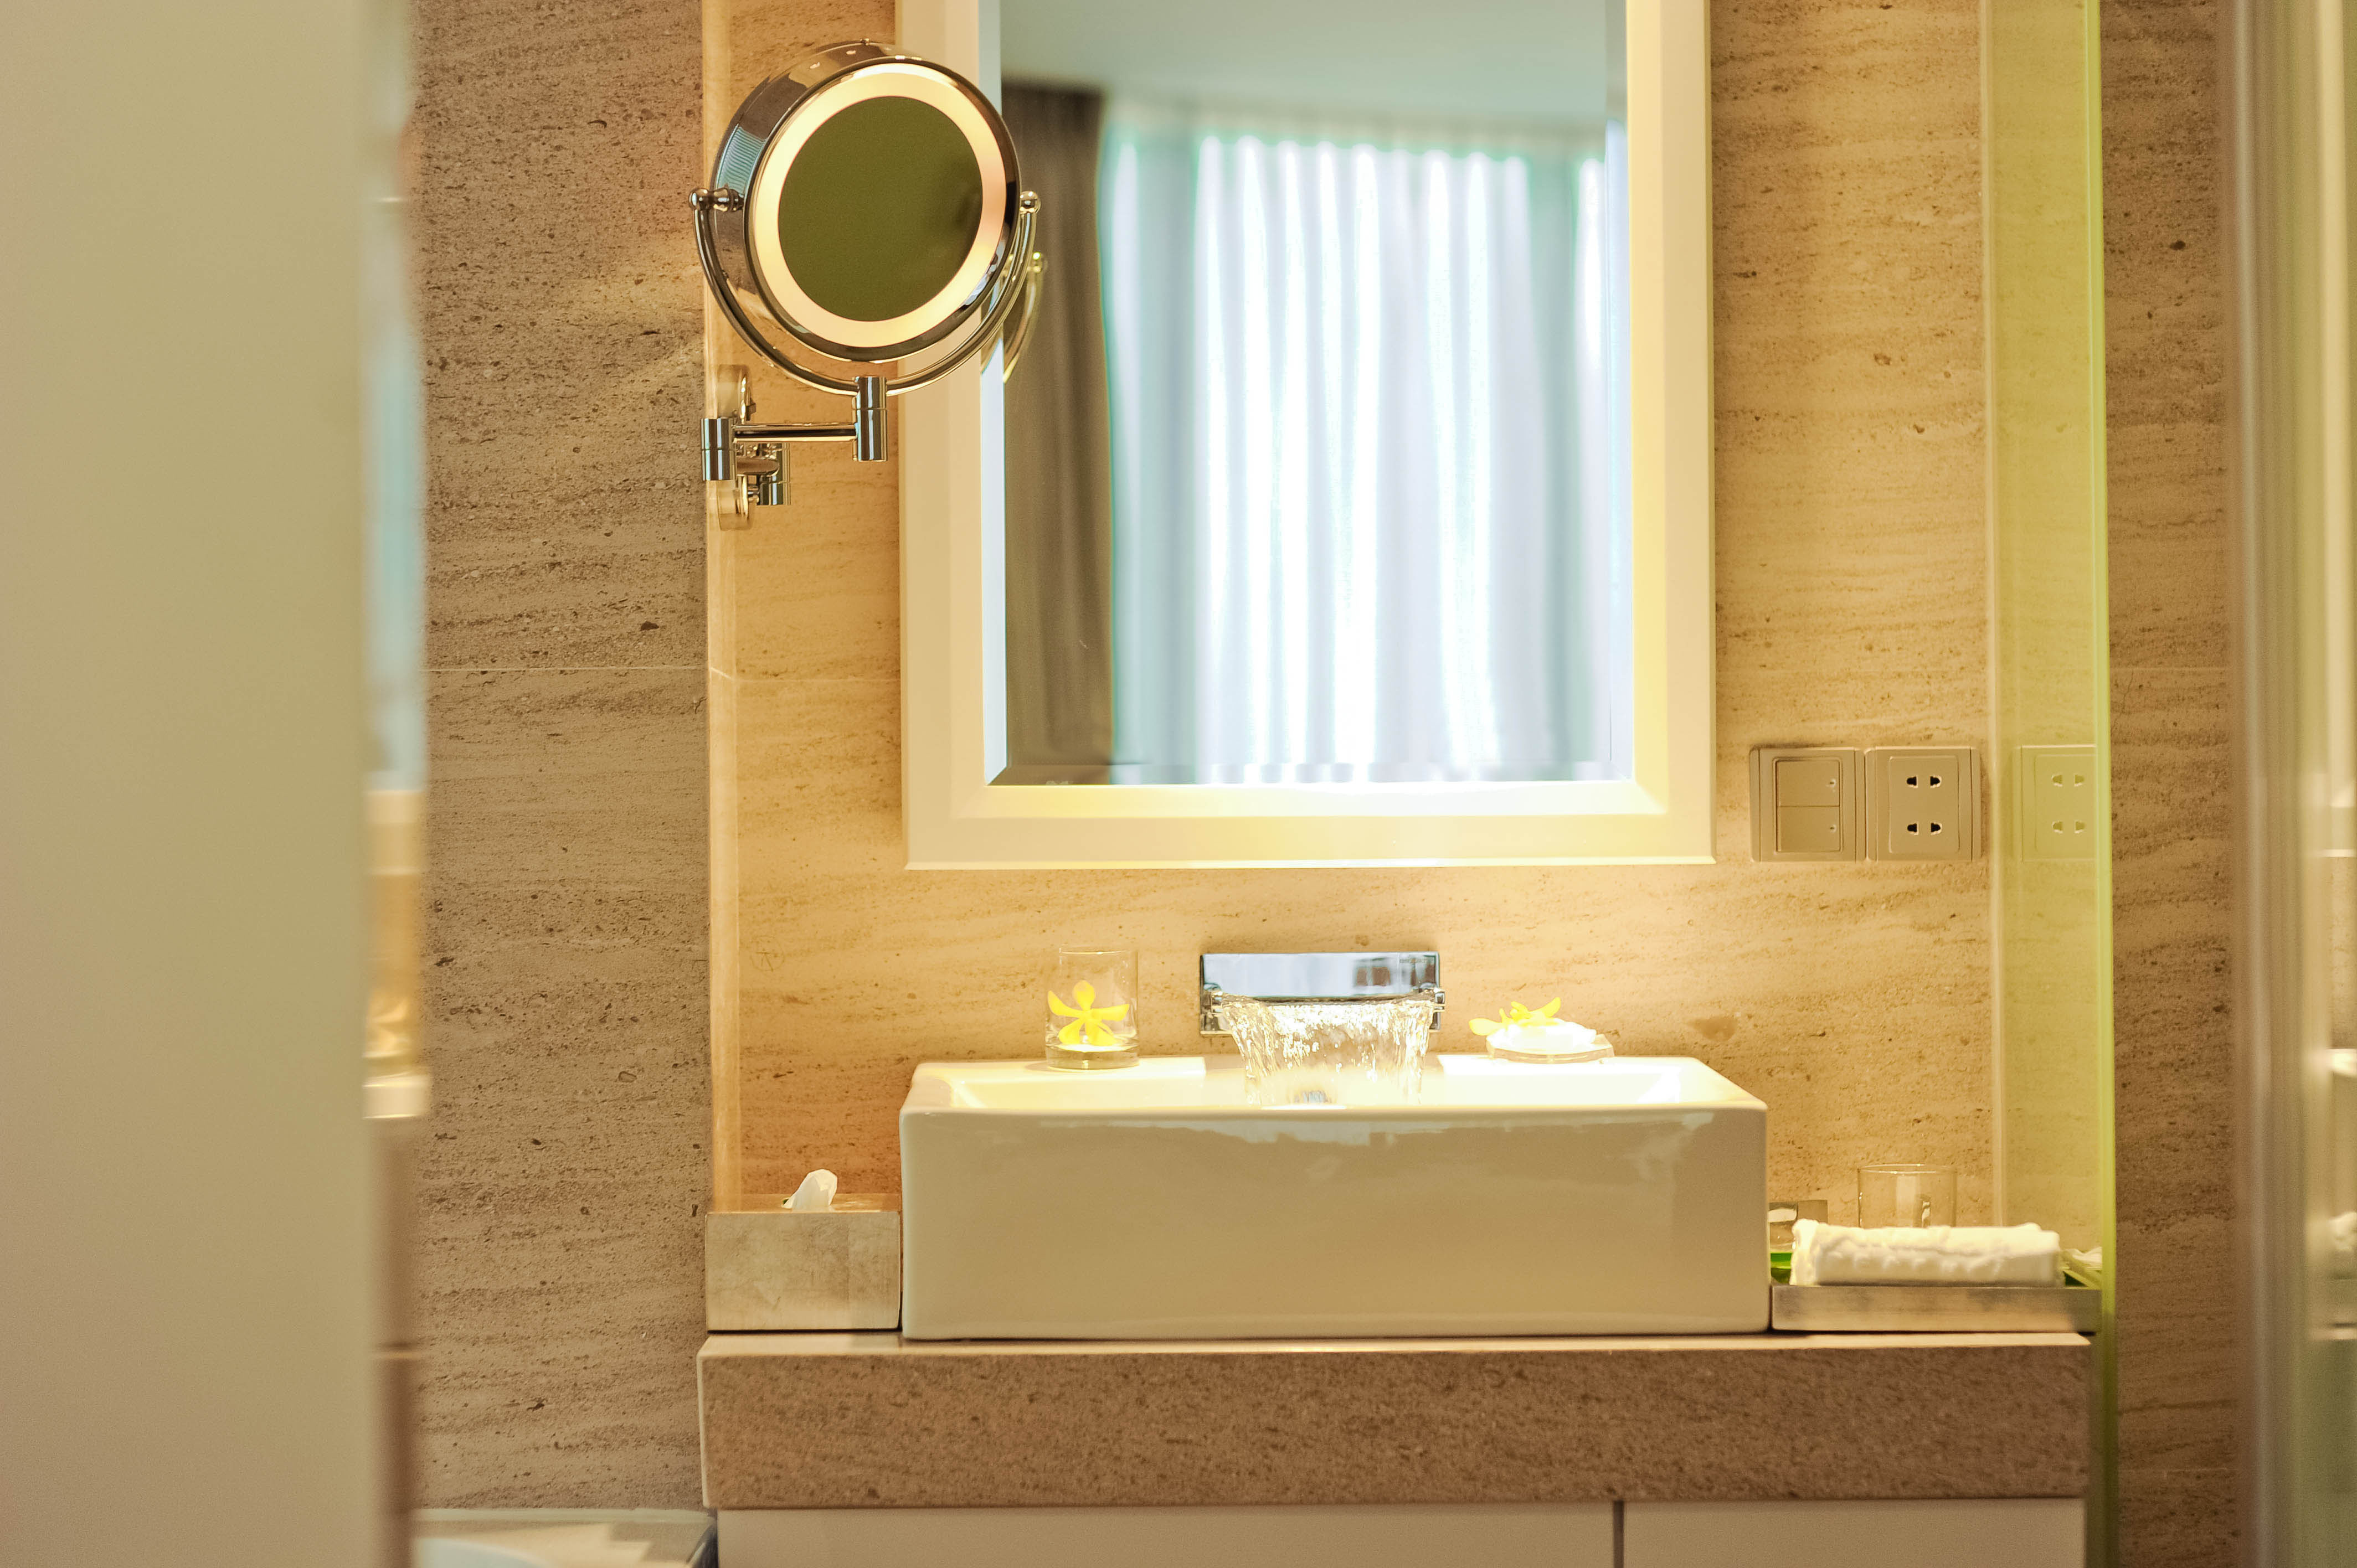 https://s3-ap-southeast-1.amazonaws.com/viettrip/Hotels/792/143842_31102016_superior-spa-ocean-bathroom.jpg